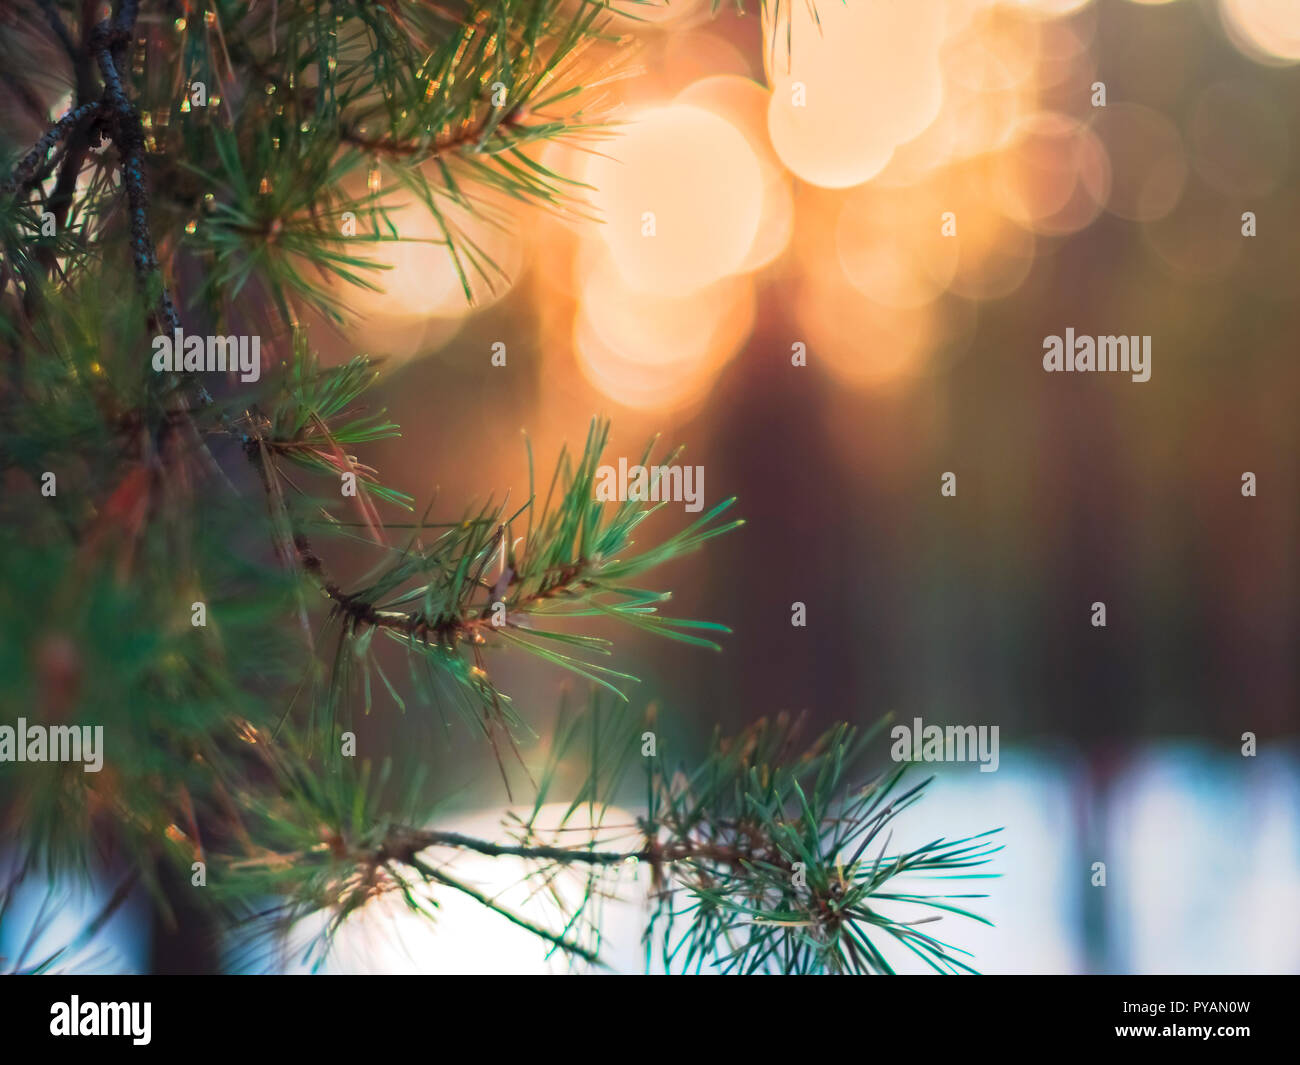 a12ebaf75df Pine Tree Fir Branch In The Winter Forest. Colorful Blurred Warm Christmas  Lights In Background